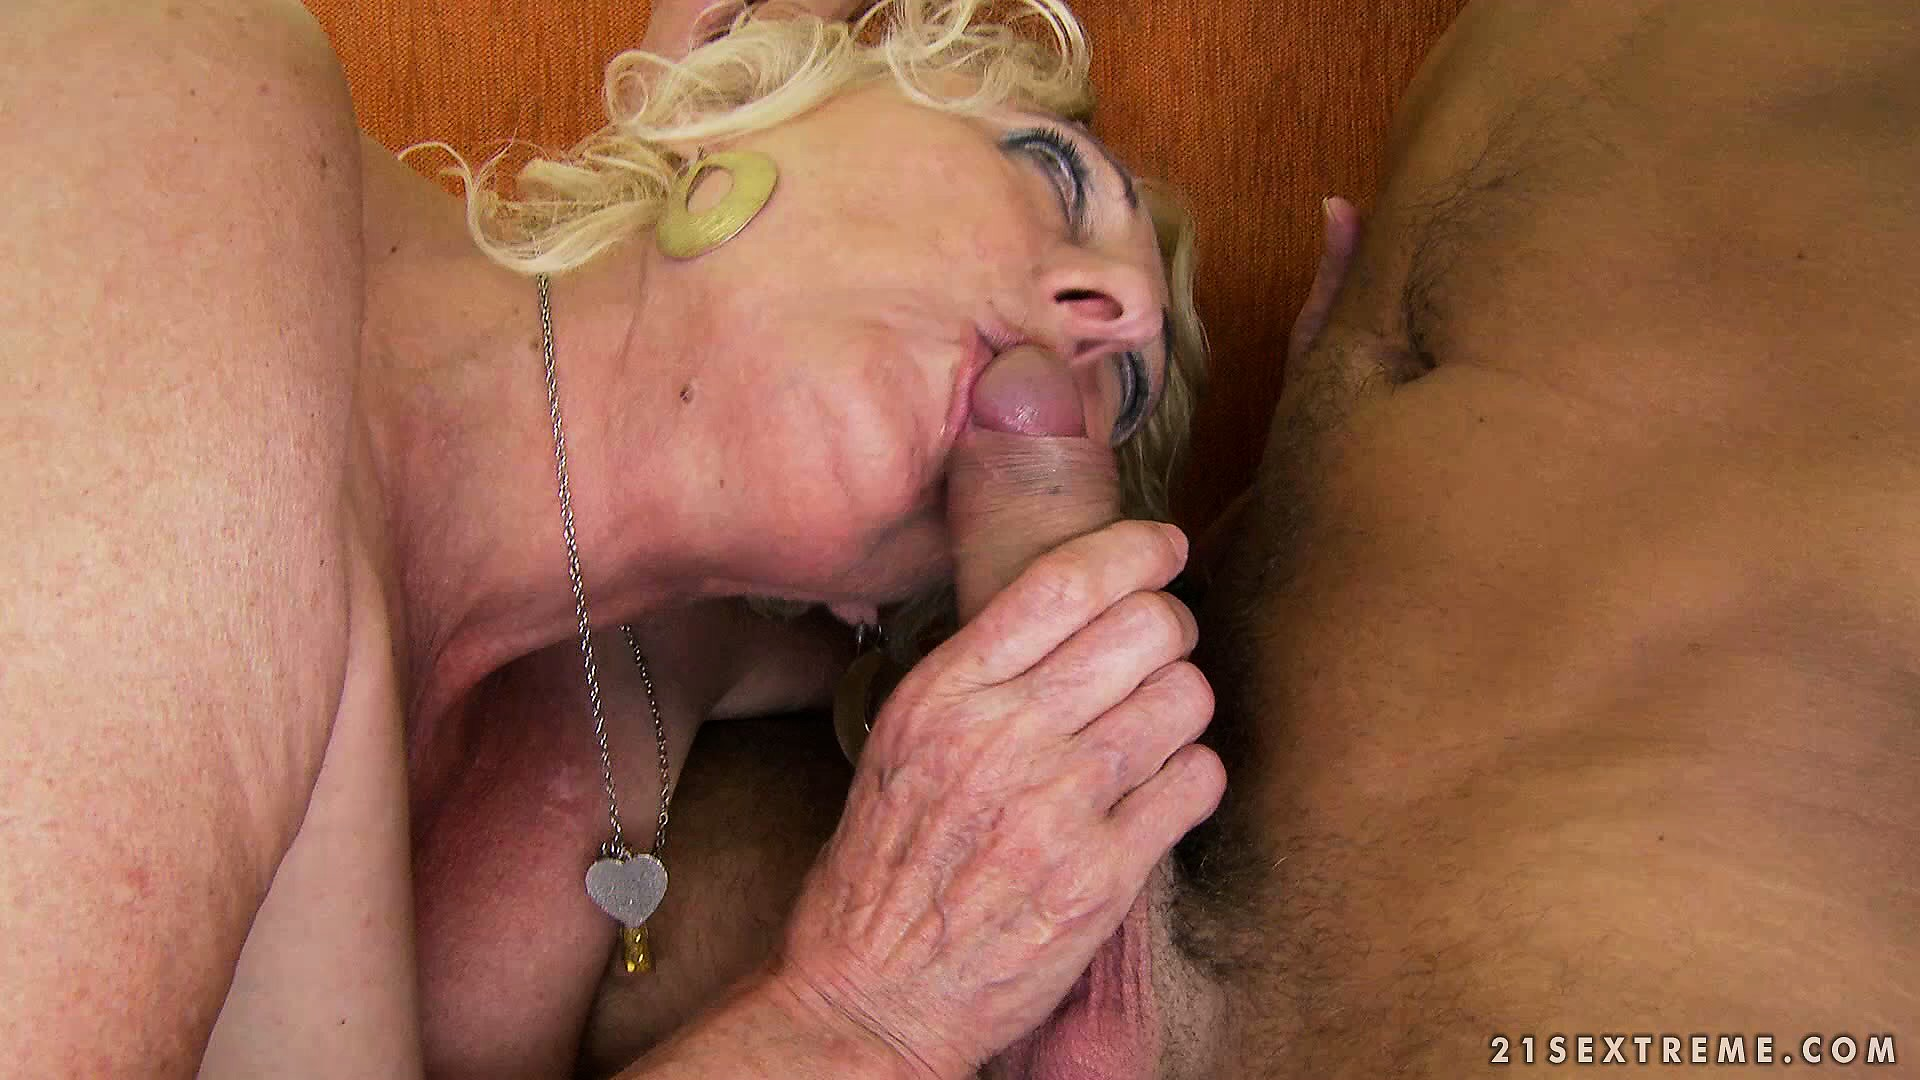 Porn Tube of Blonde Mature Lady With Huge Tits Makes The Moves To Satisfy Her Sexual Needs